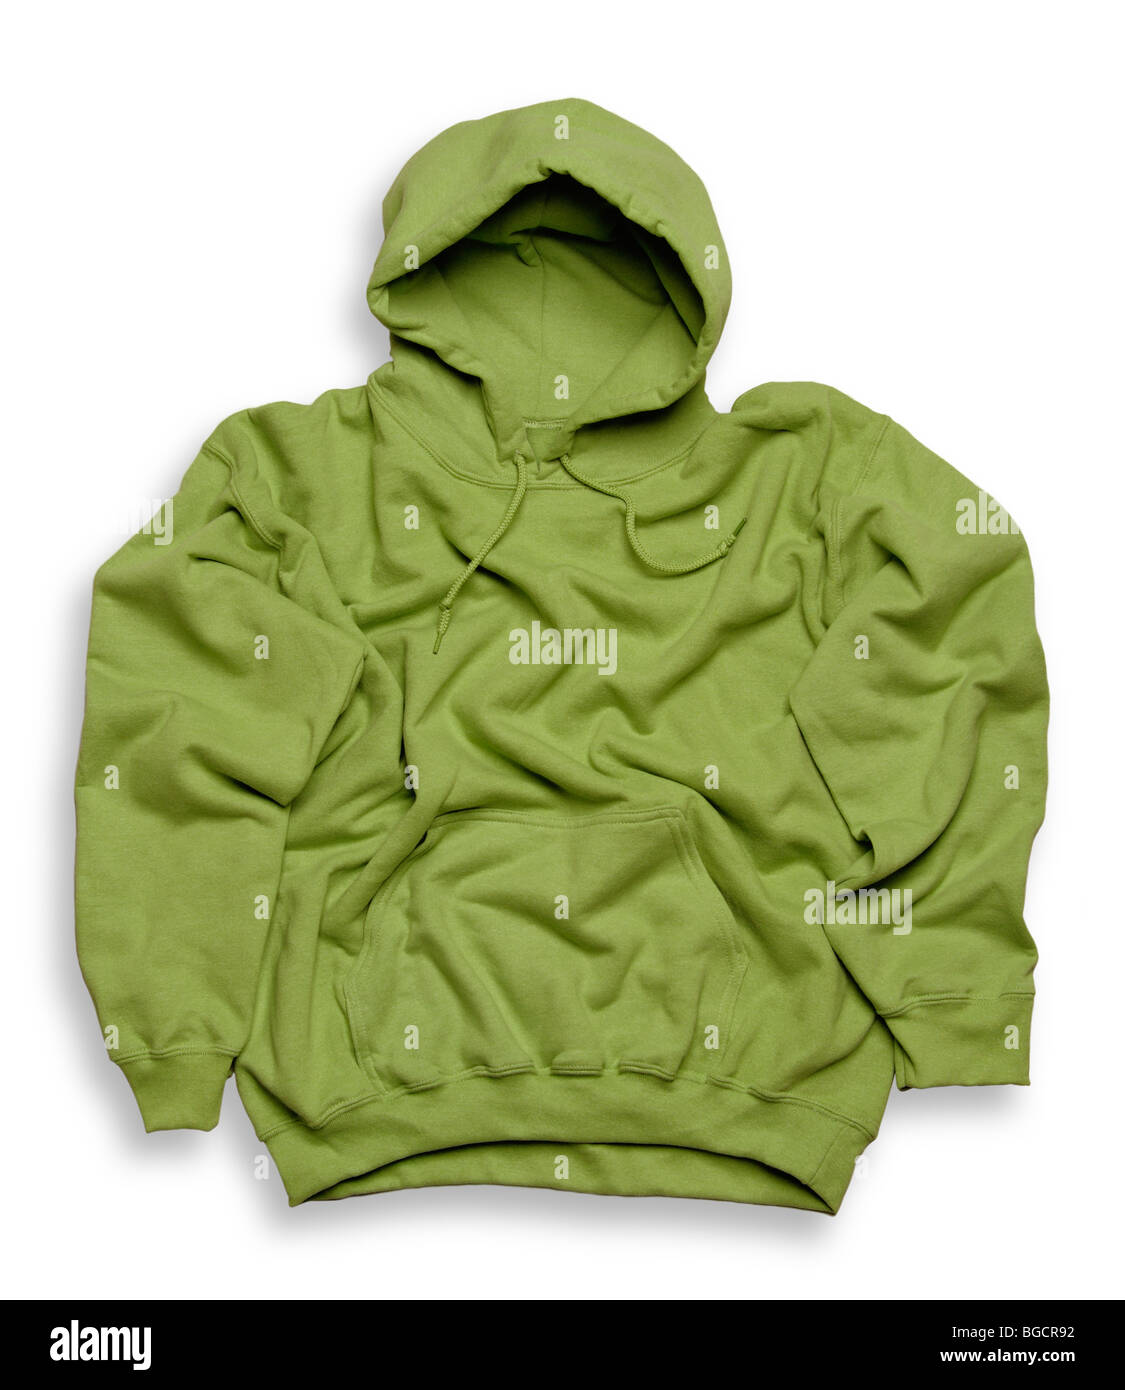 Green hooded top - Stock Image